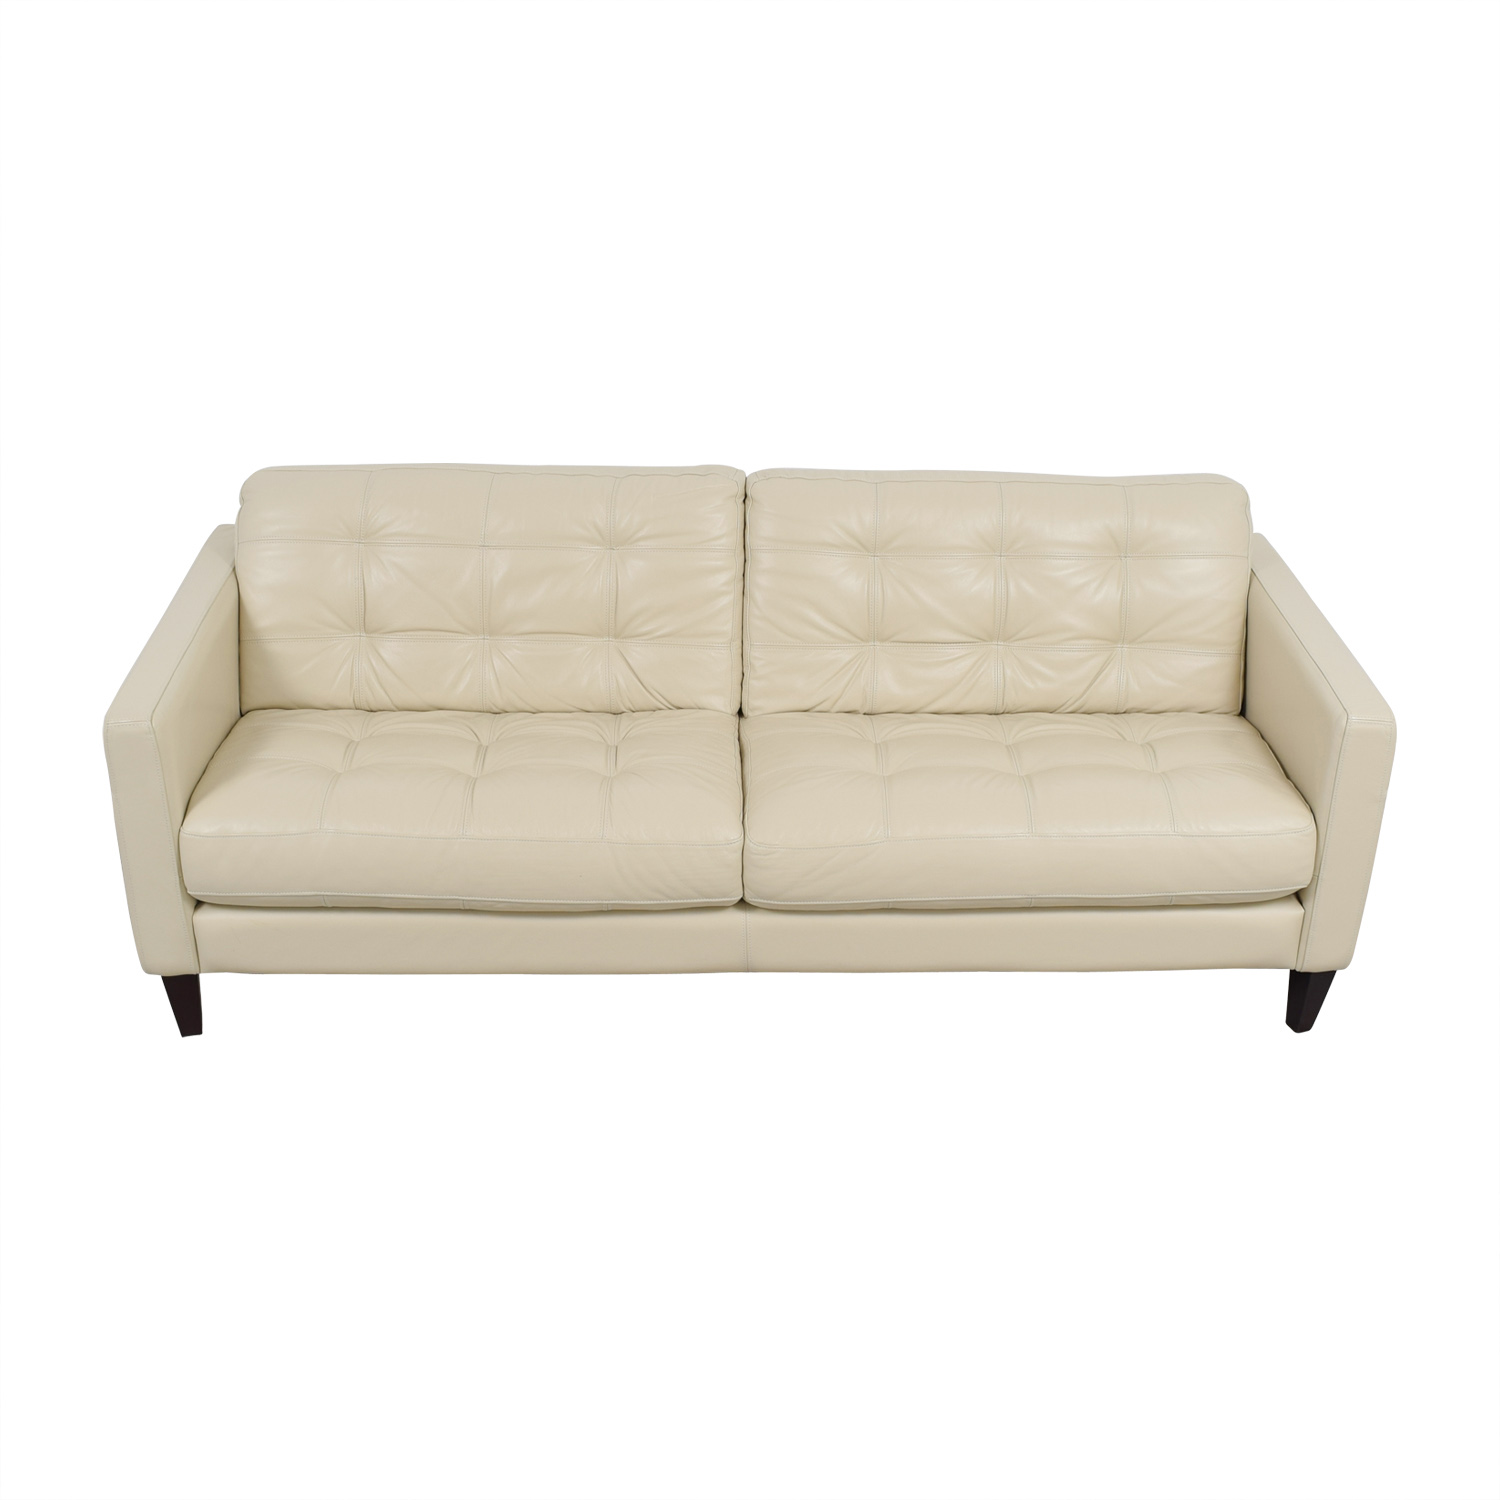 tufted sofas on sale harvey s corner sofa 279 69 off macy 39s gray leather